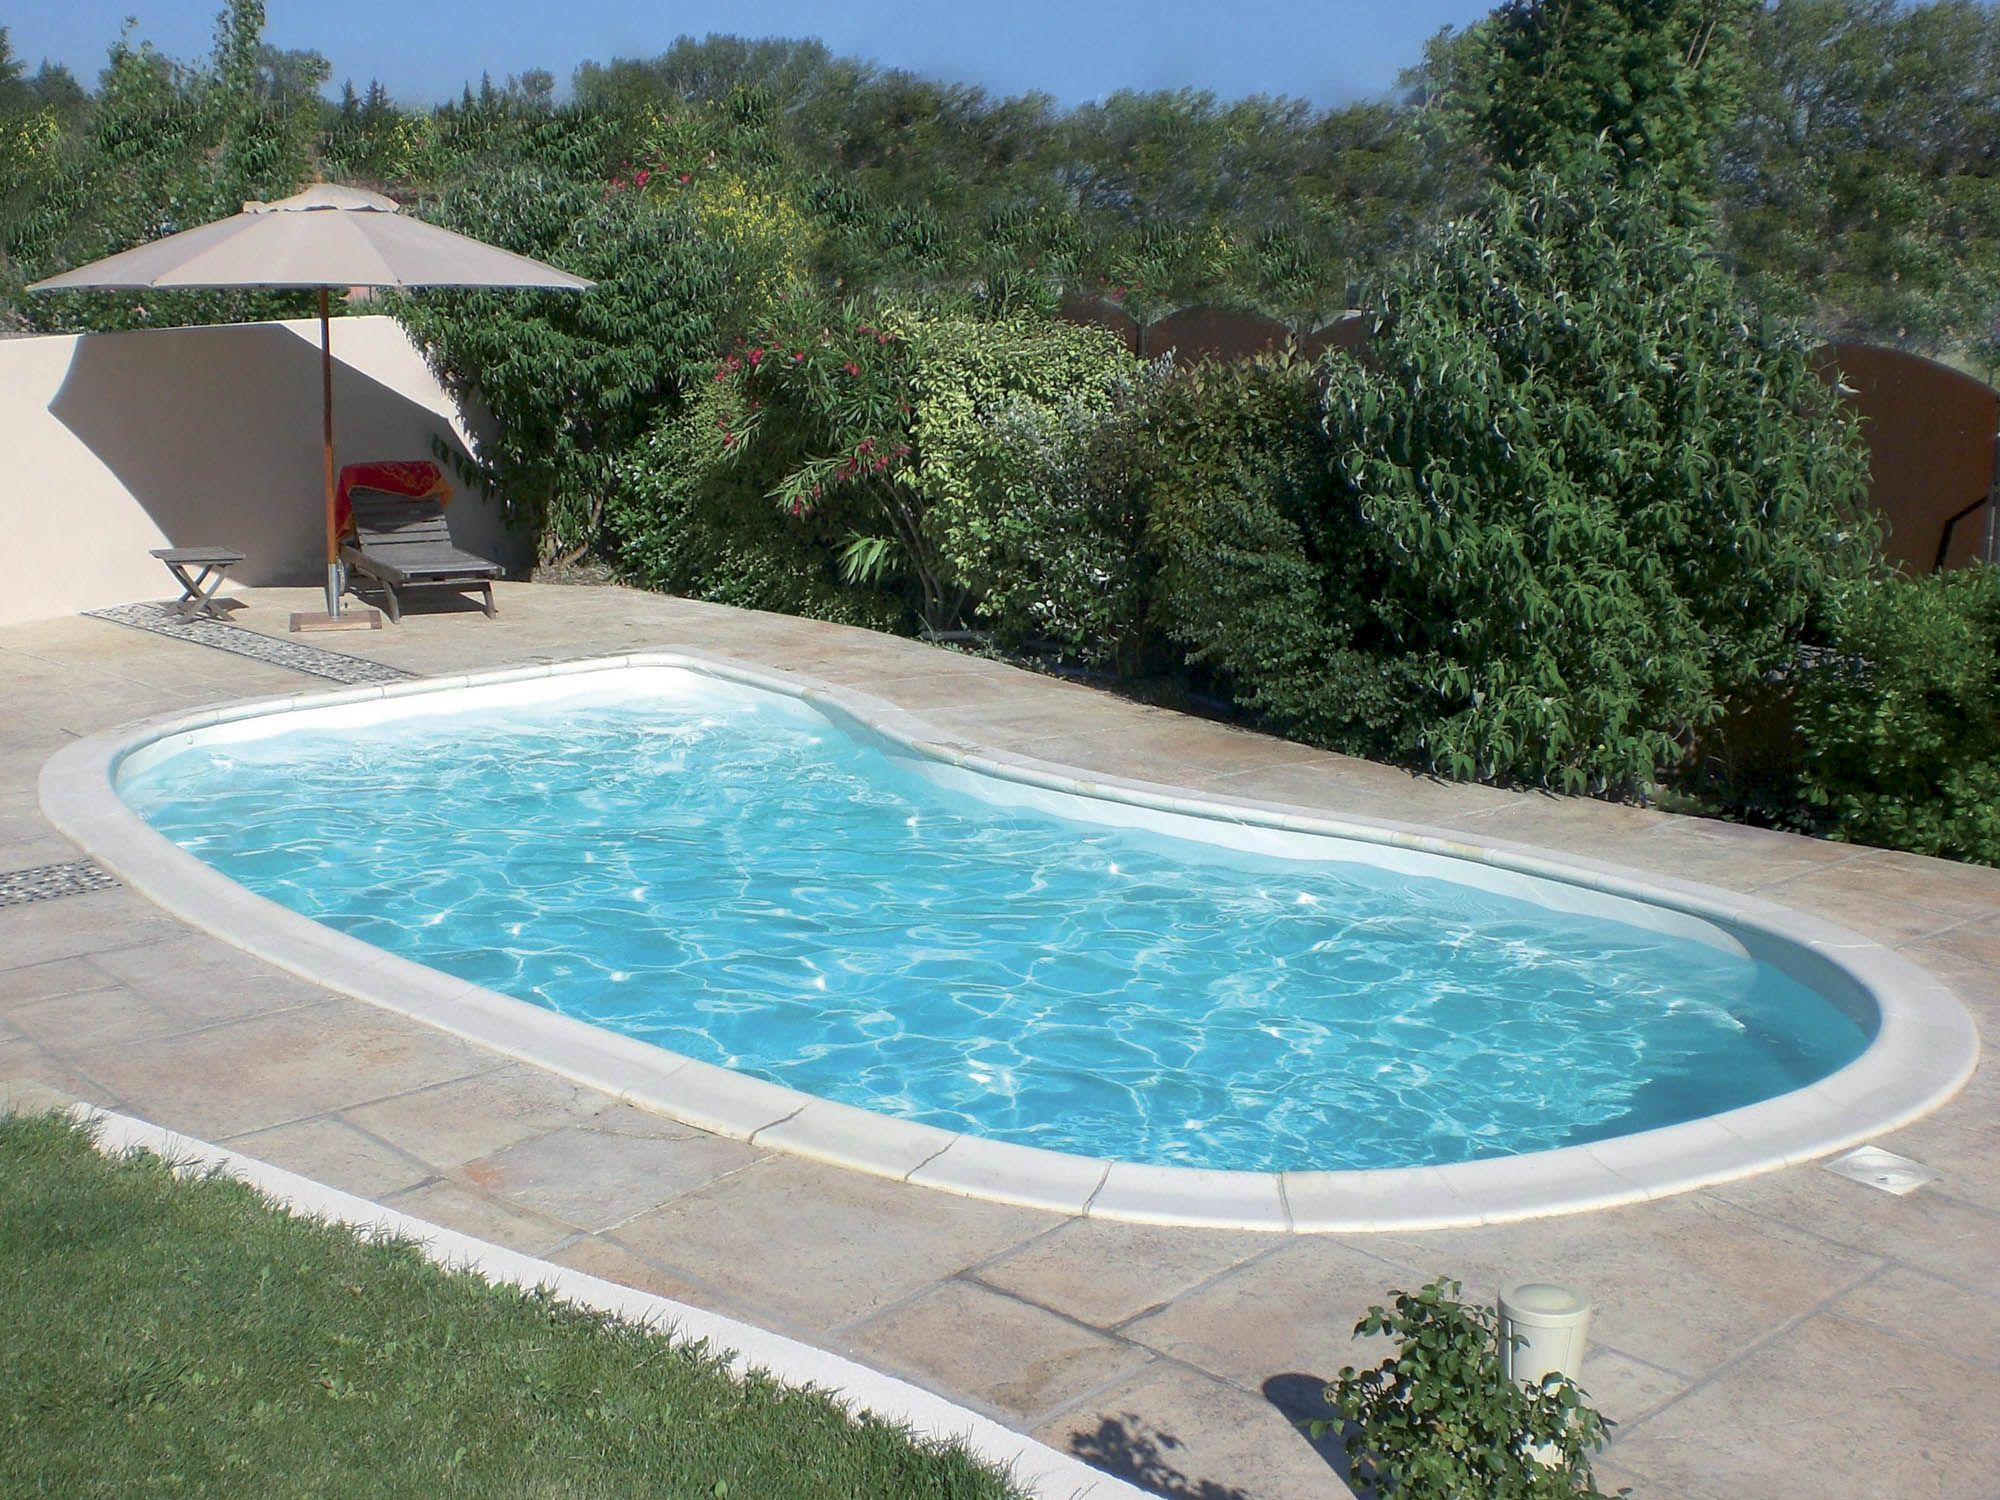 Piscine coque polyester ovation piscine haricot for Coque piscine polyester